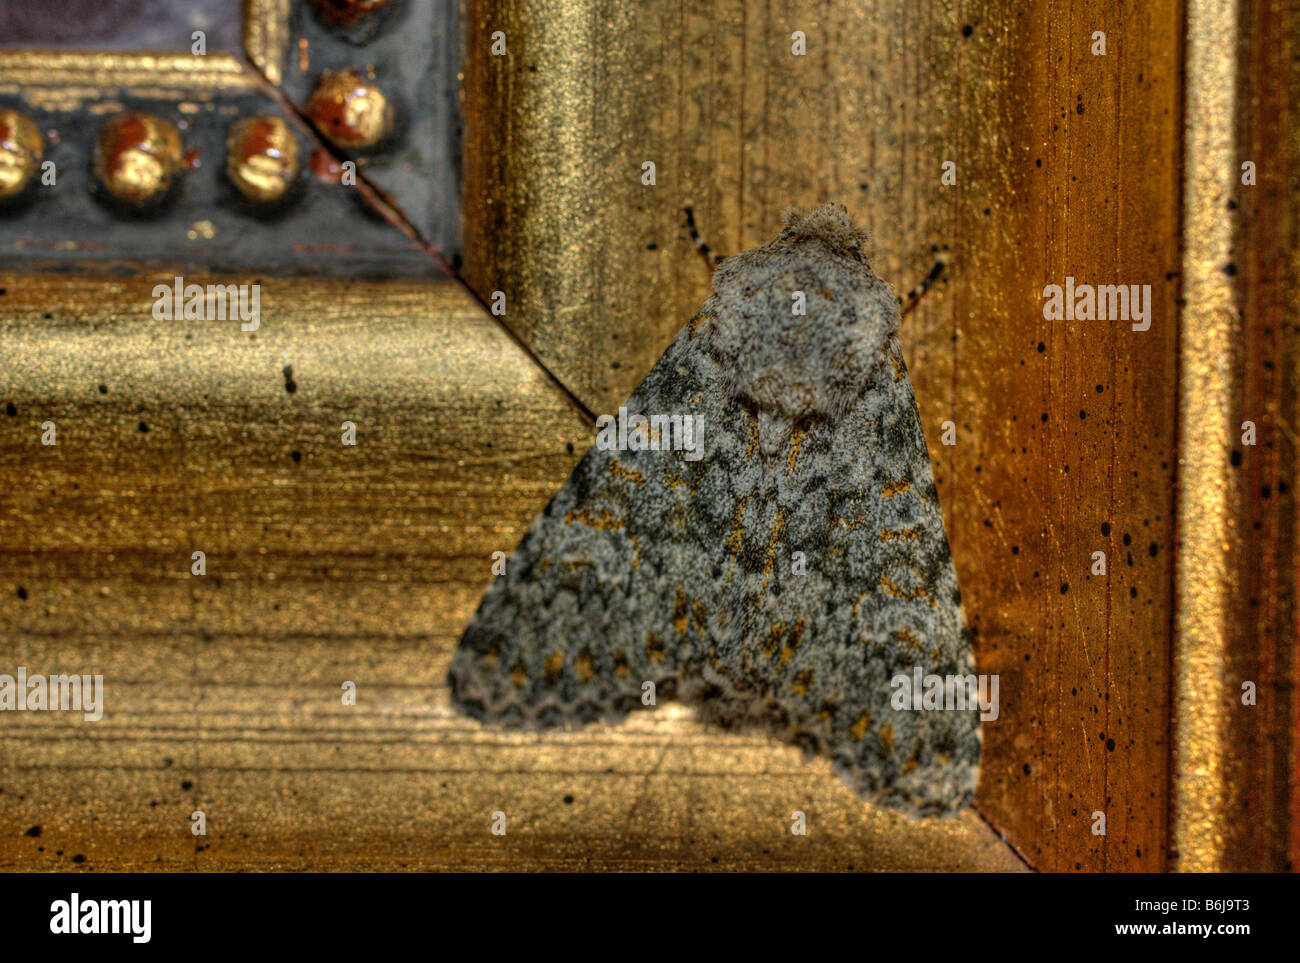 Macro photograph of a moth resting on a wooden picture frame of a painting in a hotel - Stock Image